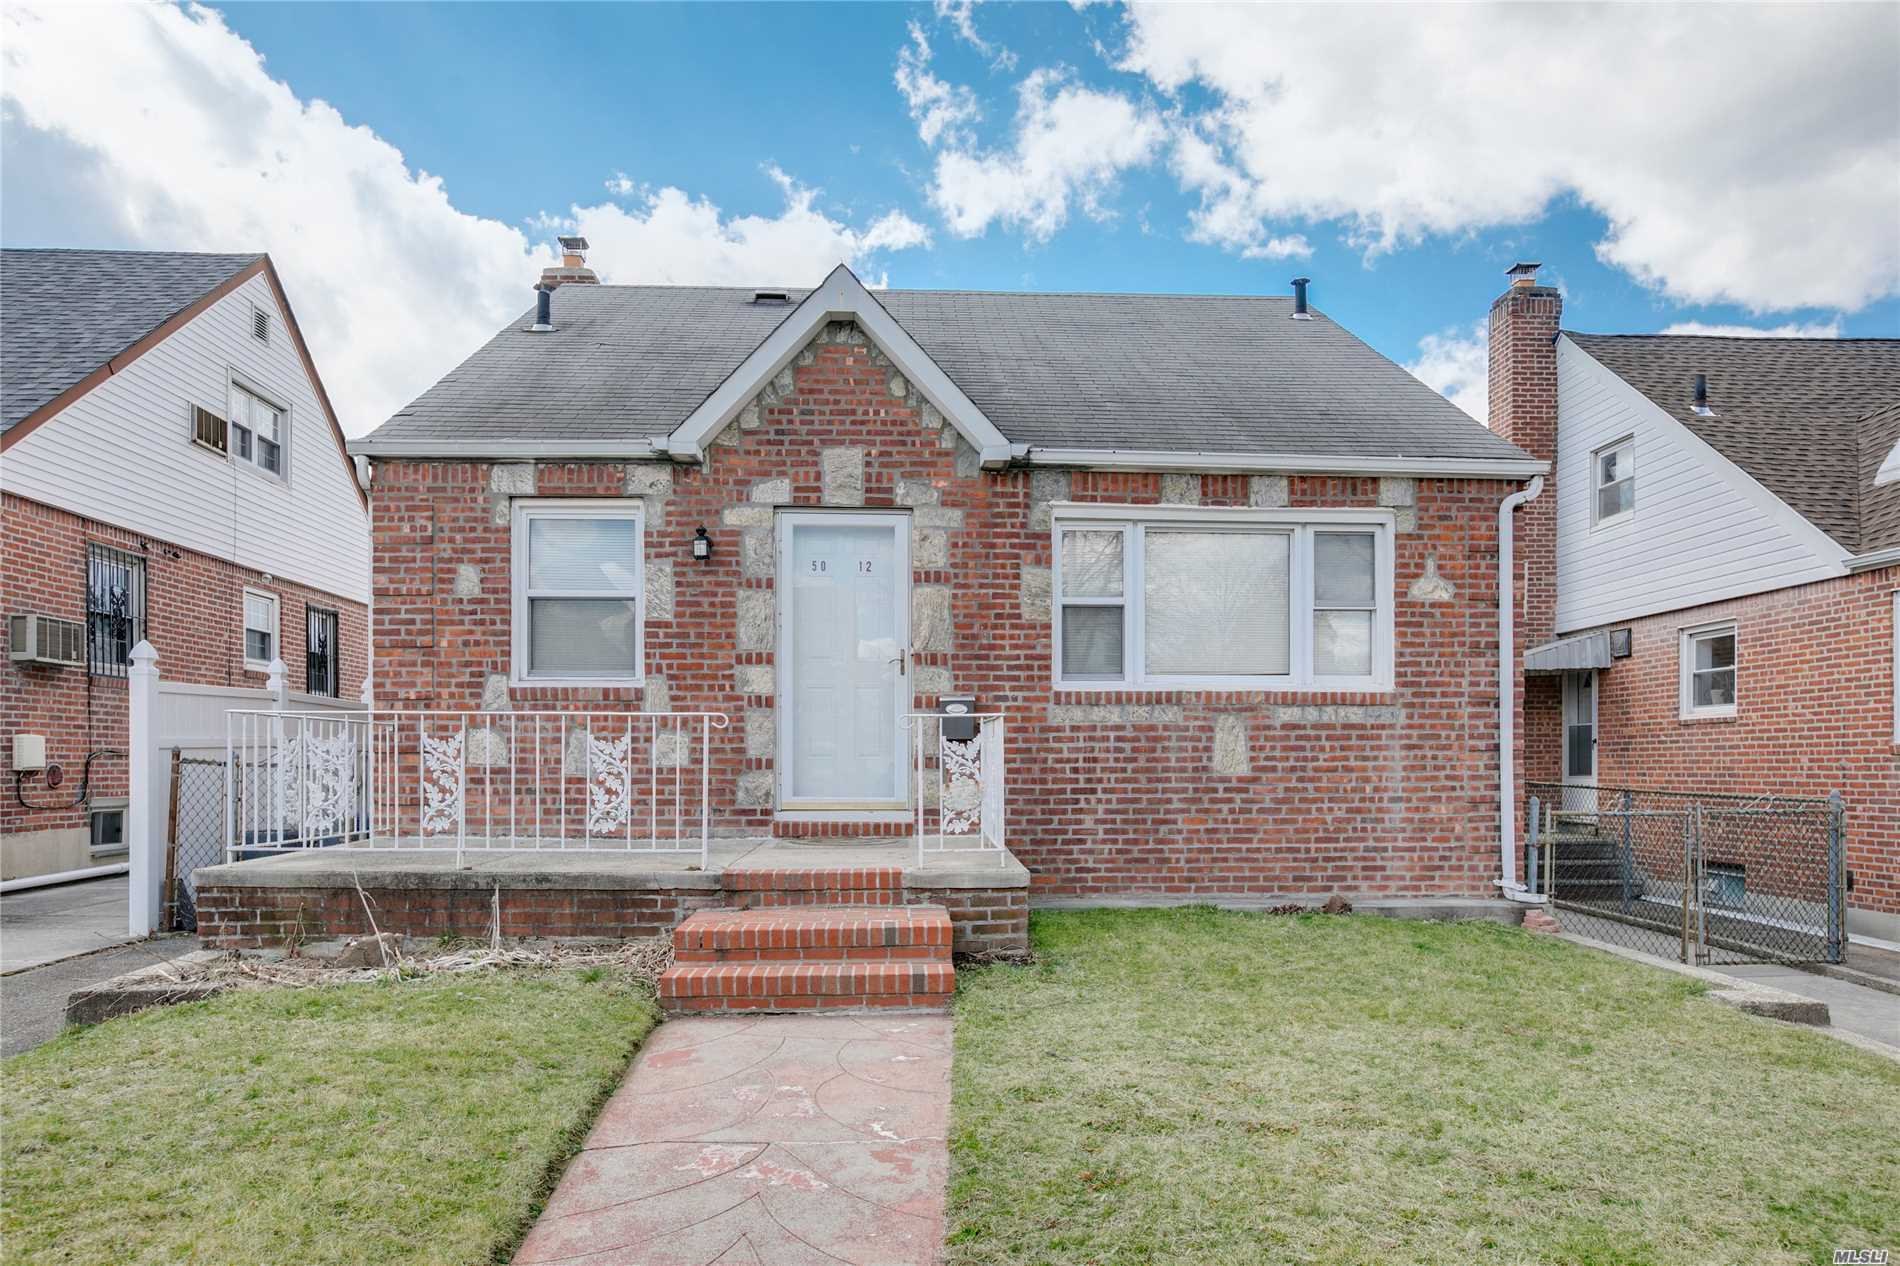 Well Maintained Brick House Locates In The Heart Of Fresh Meadows.Terrific Curb Appeal Great Flow Of Entertaining. Exceptional Opportunity ! Mid-Block On Quiet Tree-Lined Street. Convenient To All Shopping, Transportation. Easy Access To All Major Highways. Best School Dist#26: Ps162, Is216 & Francis Lewis H.S